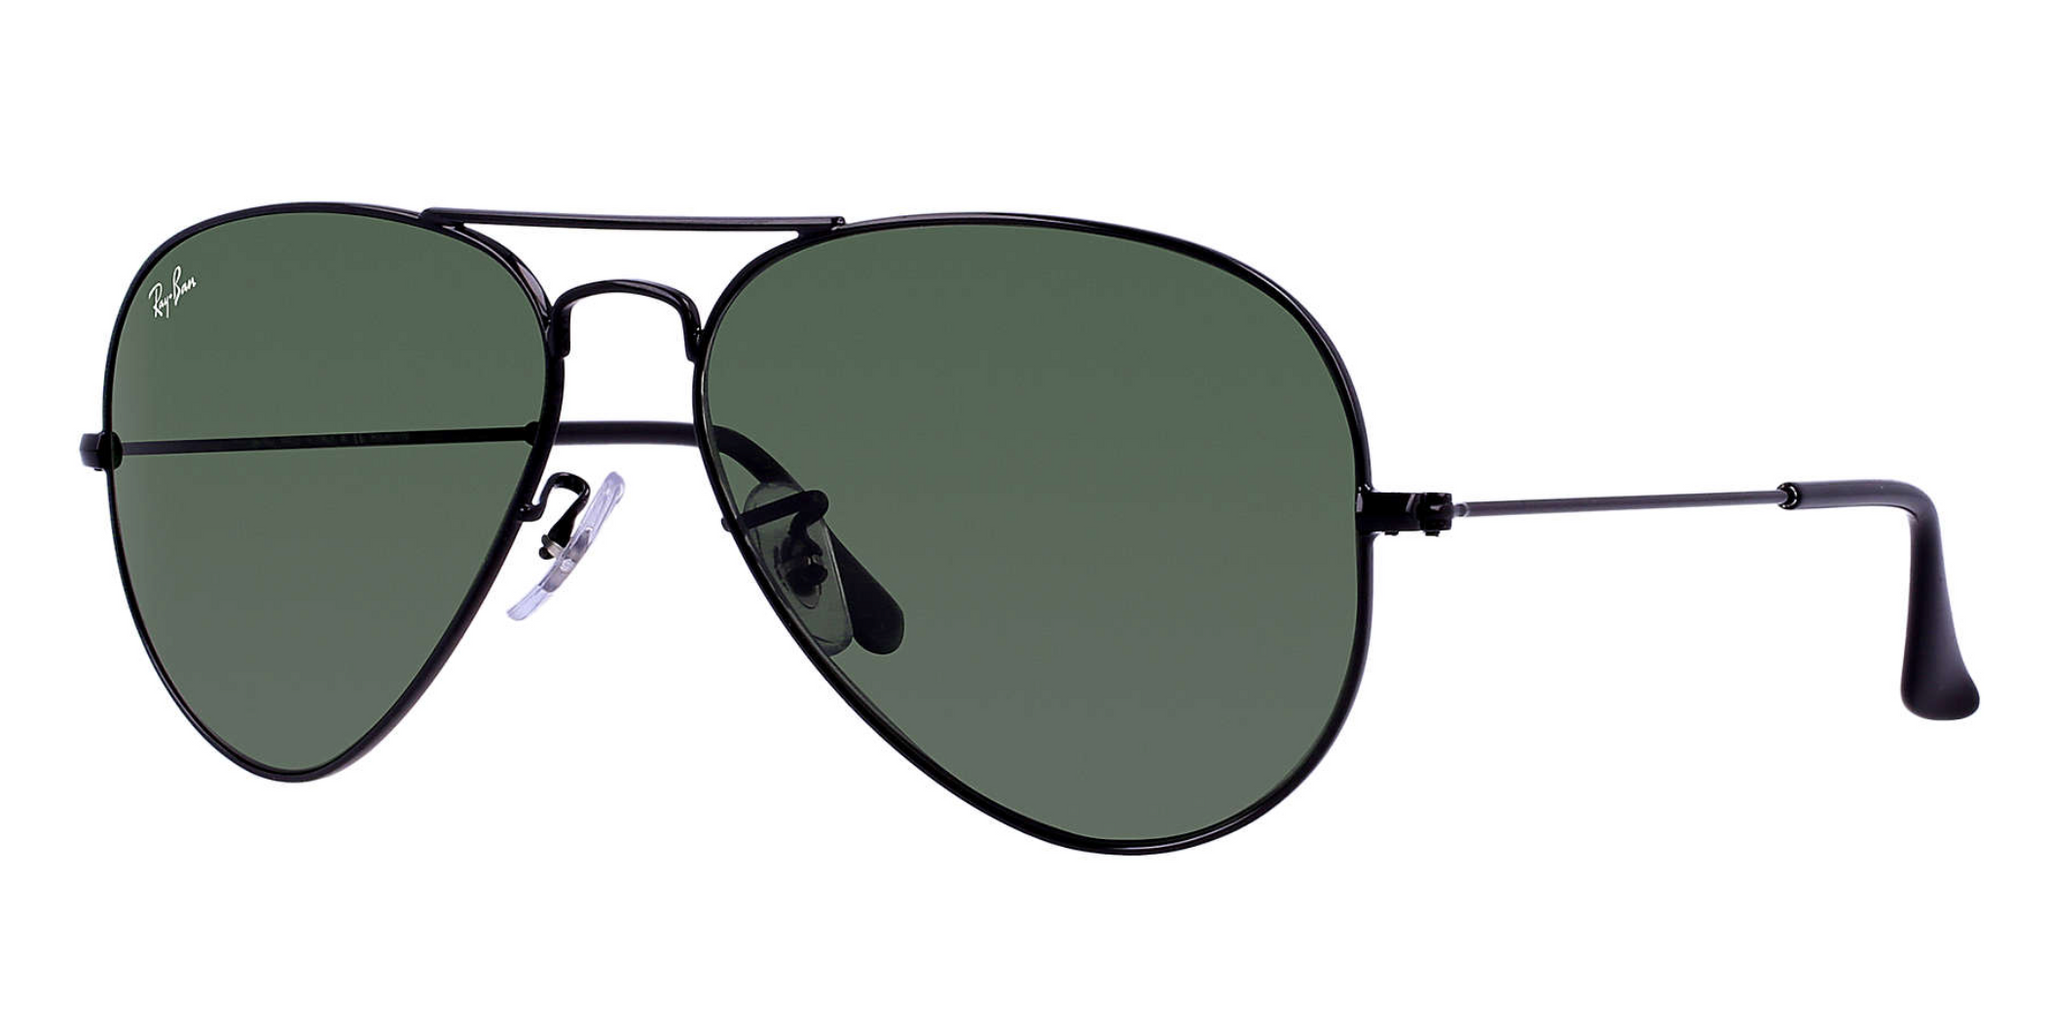 bd8b7e70854 Ray-Ban Aviator Classic G-15 Sunglasses ORB 3025 - Flight Sunglasses